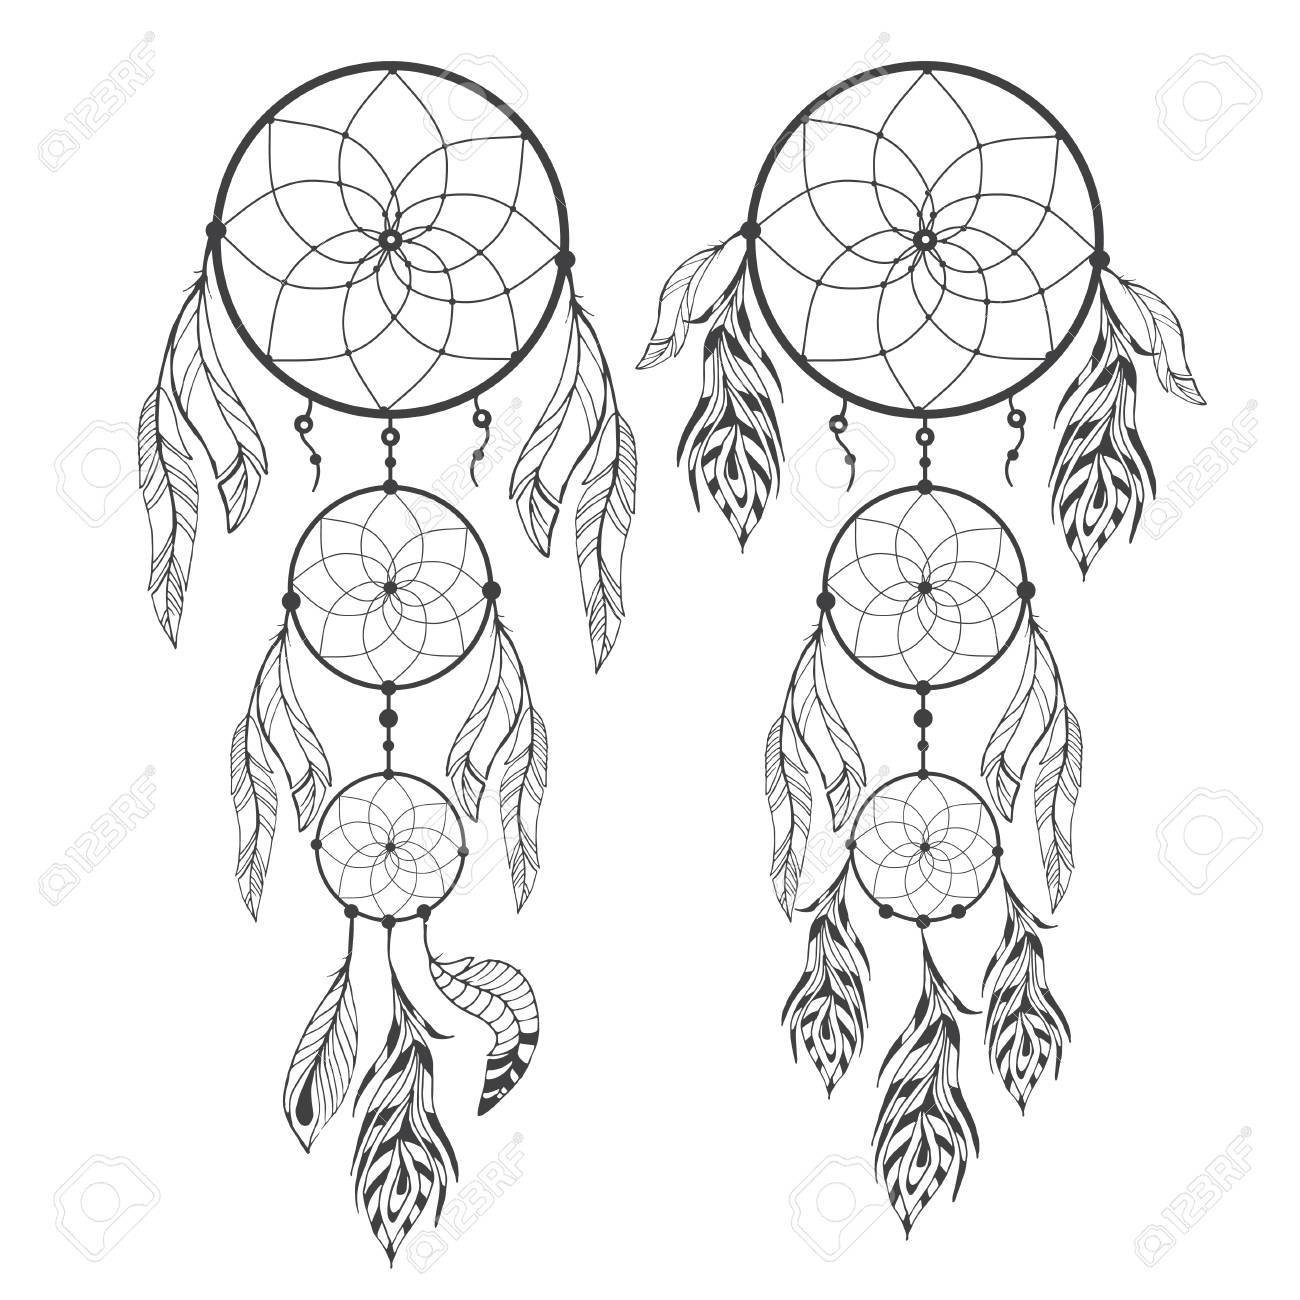 1300x1300 Hand Drawn Dream Catcher With Feathers On Izolated Background